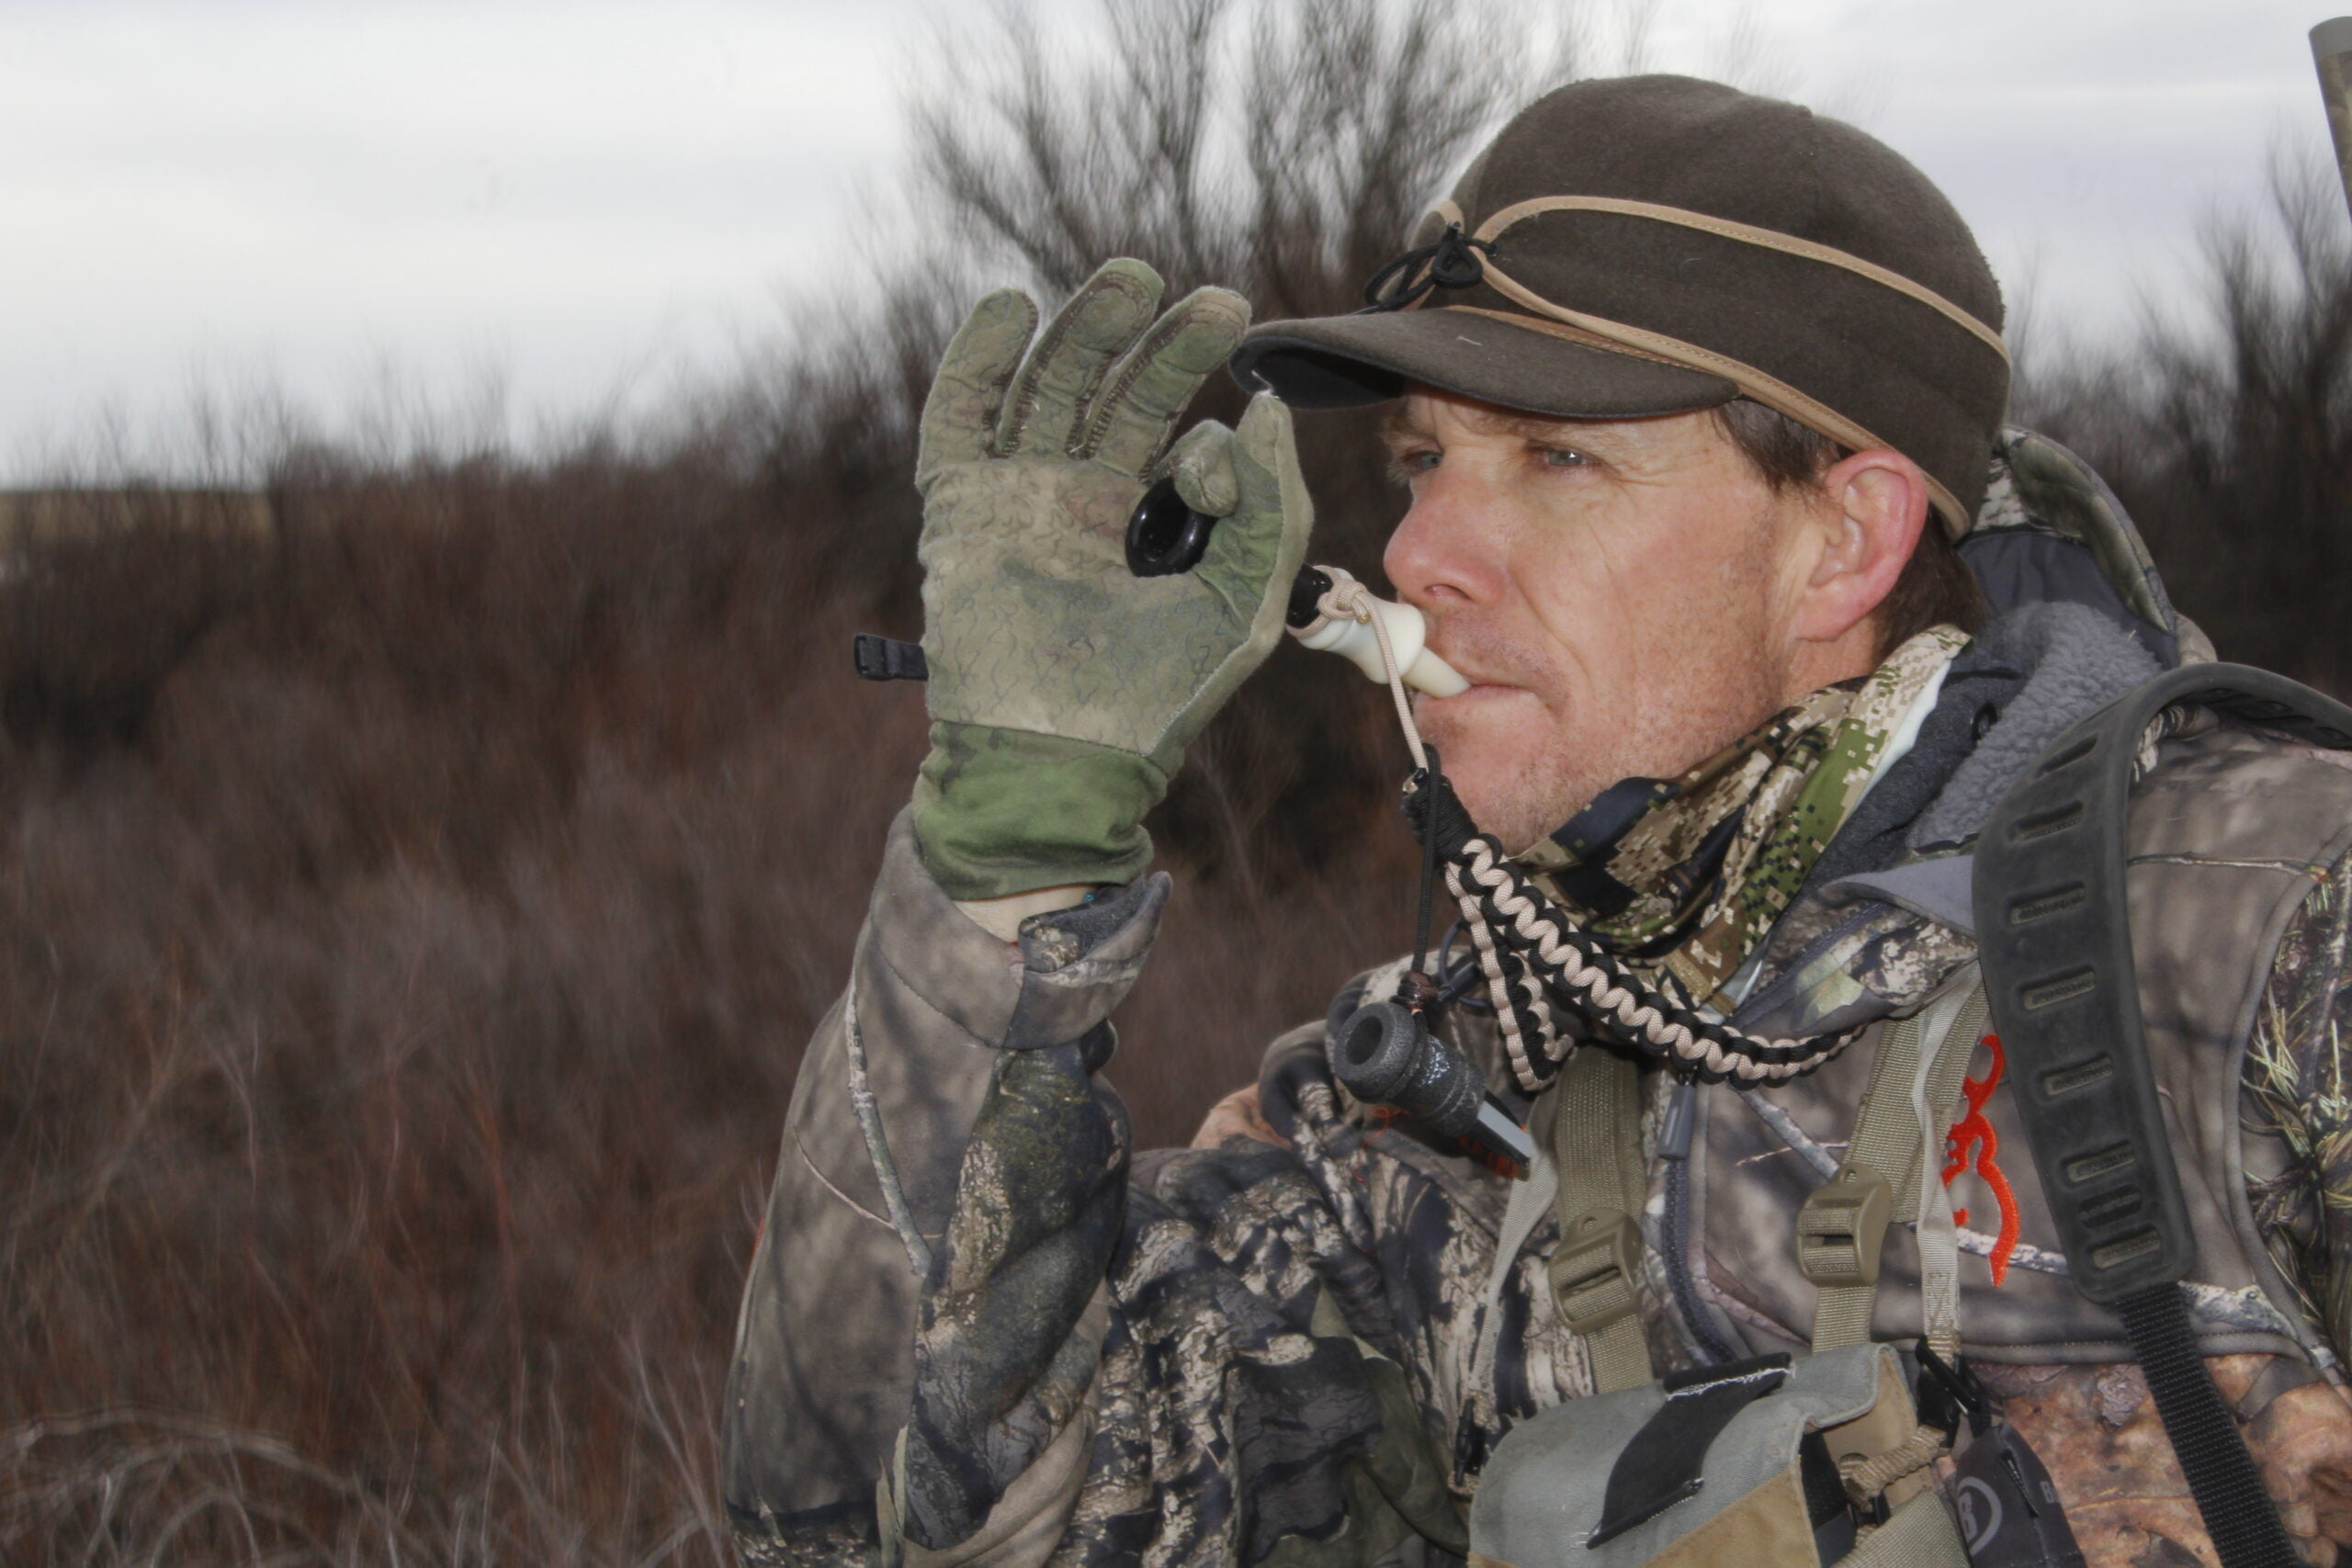 Hunter wearing camouflage blowing on a coyote call.